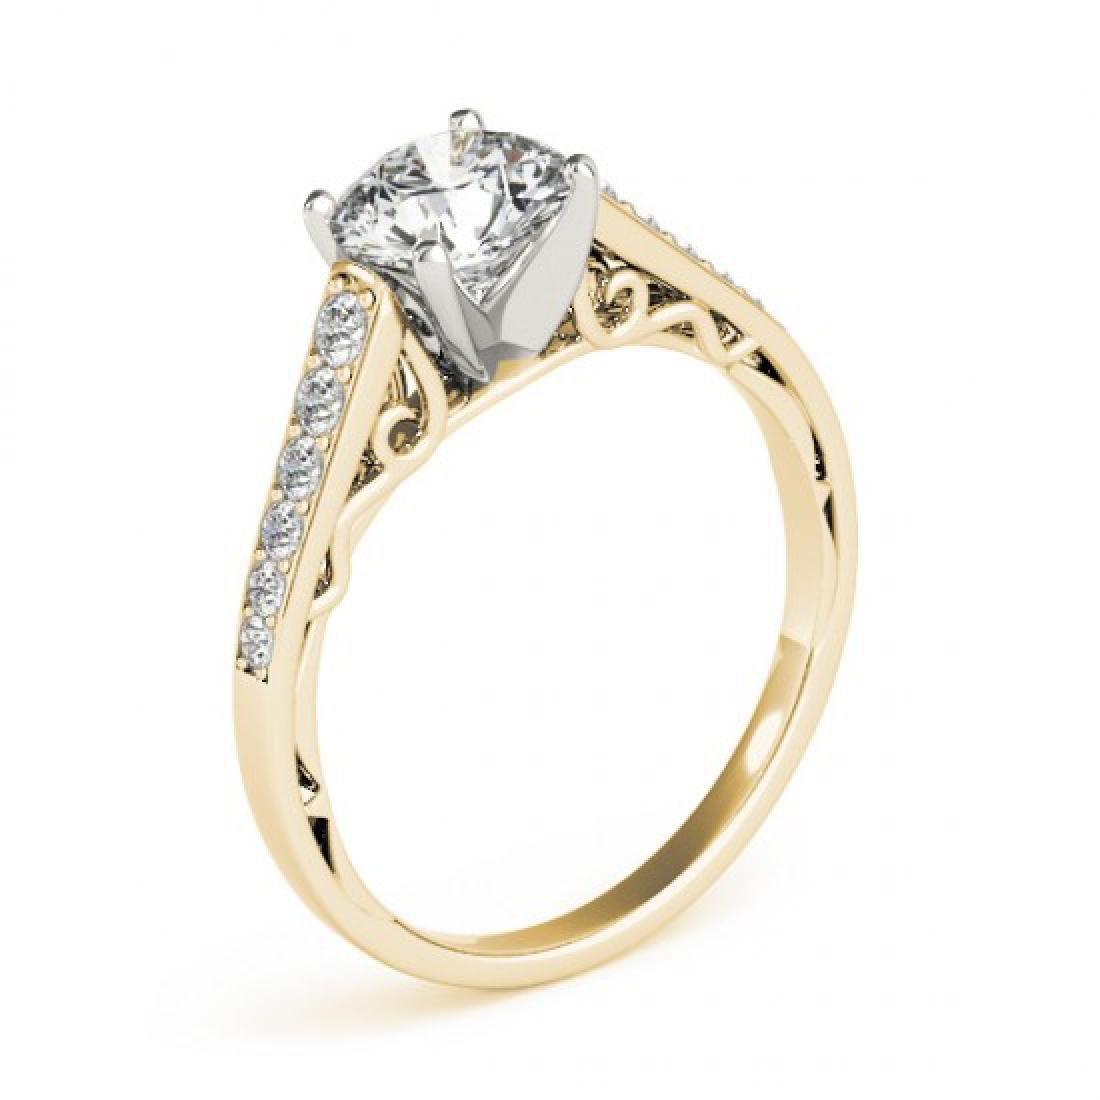 0.85 CTW Certified VS/SI Diamond Solitaire Ring 14K - 3